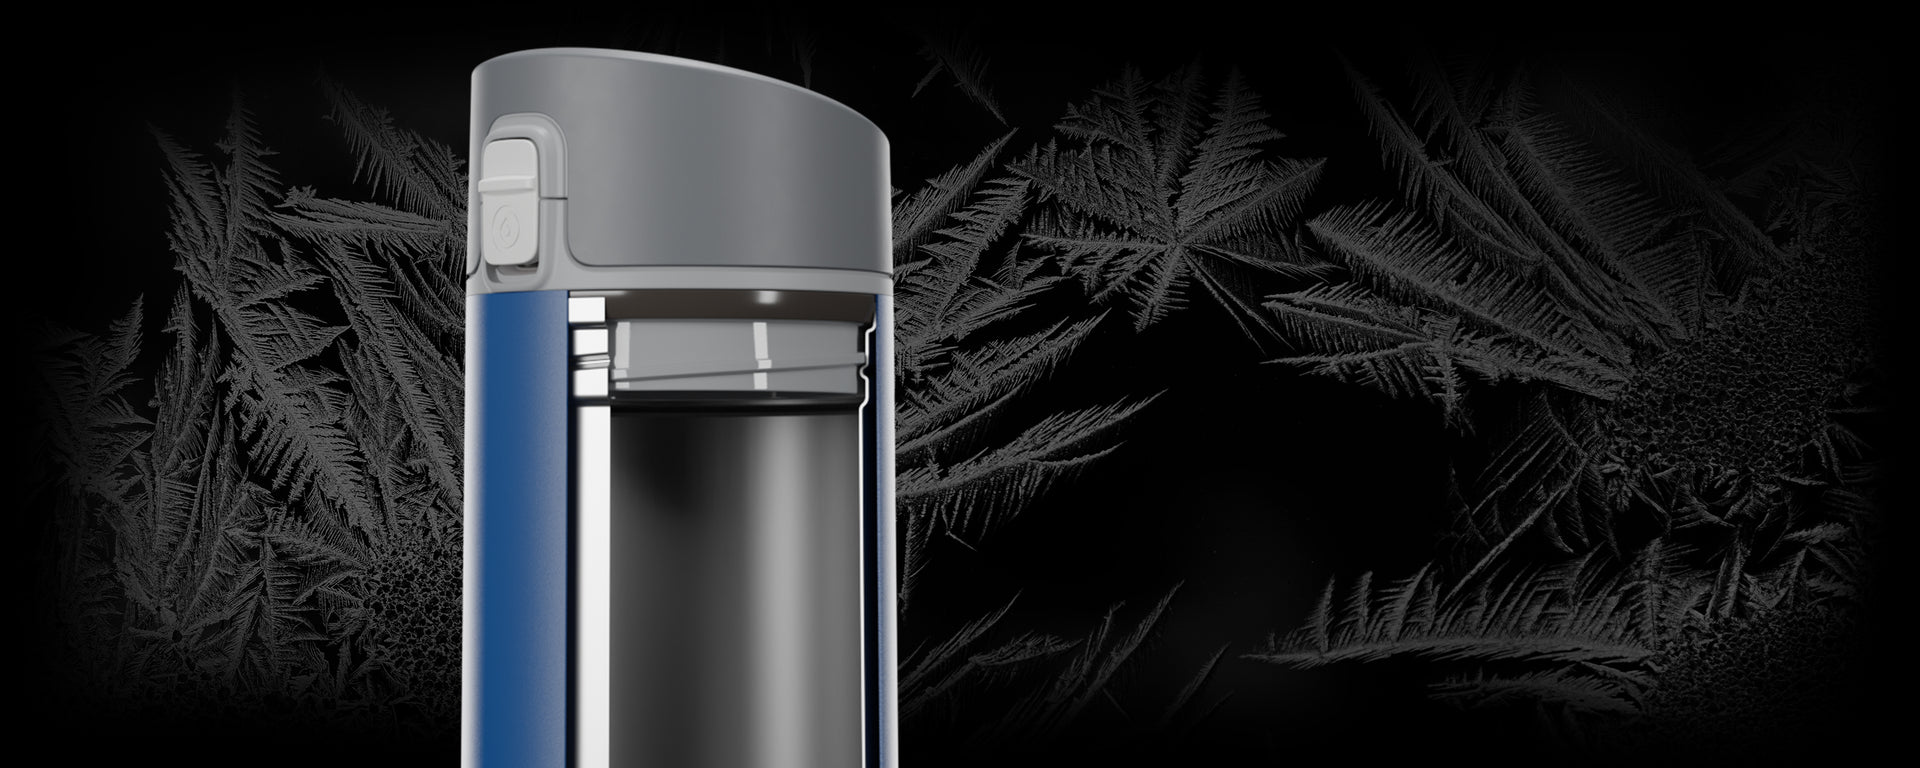 HidrateSpark STEEL's new double walled vacuum insulated stainless steel interior.